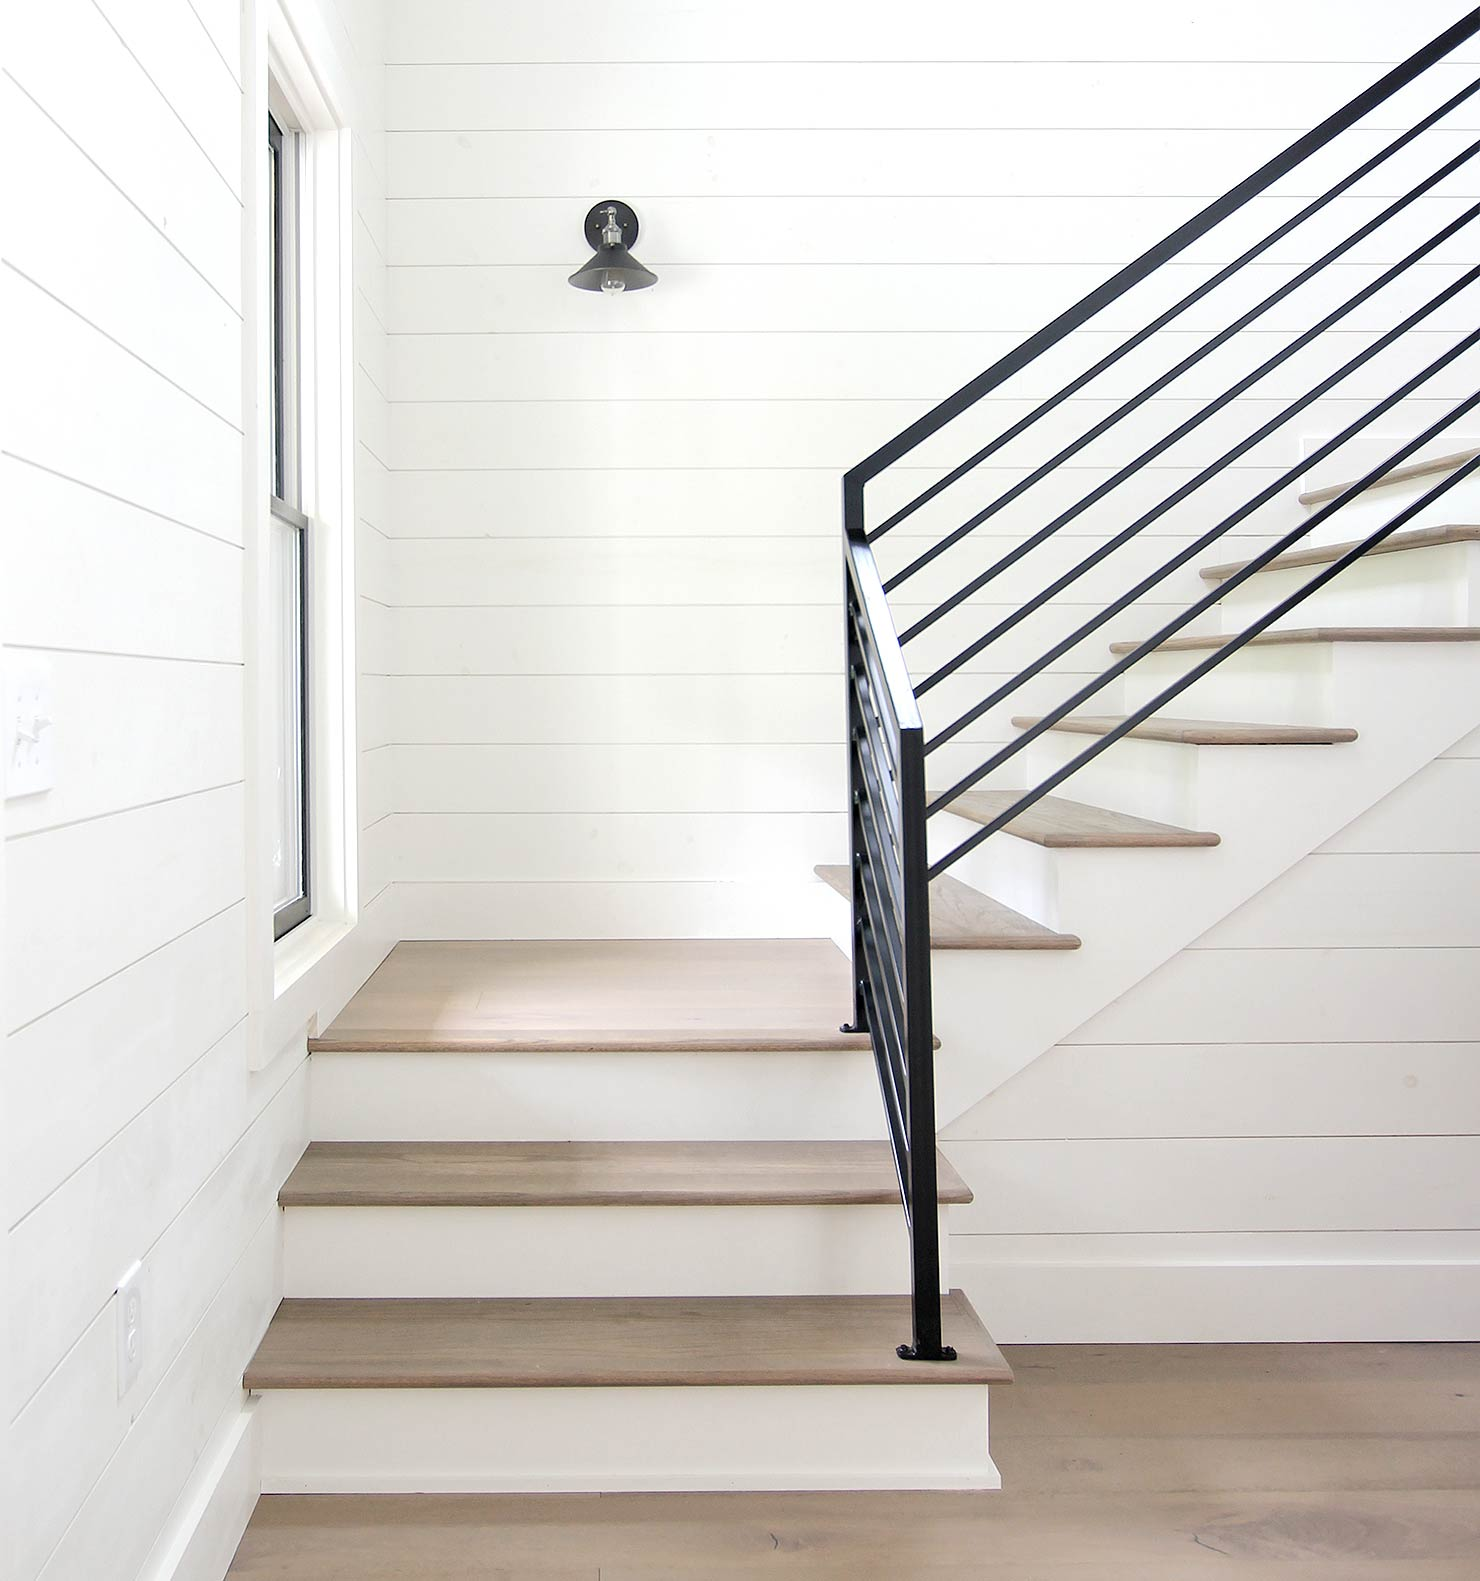 5 Tips for Better Interior Photos on Instagram - Plank and